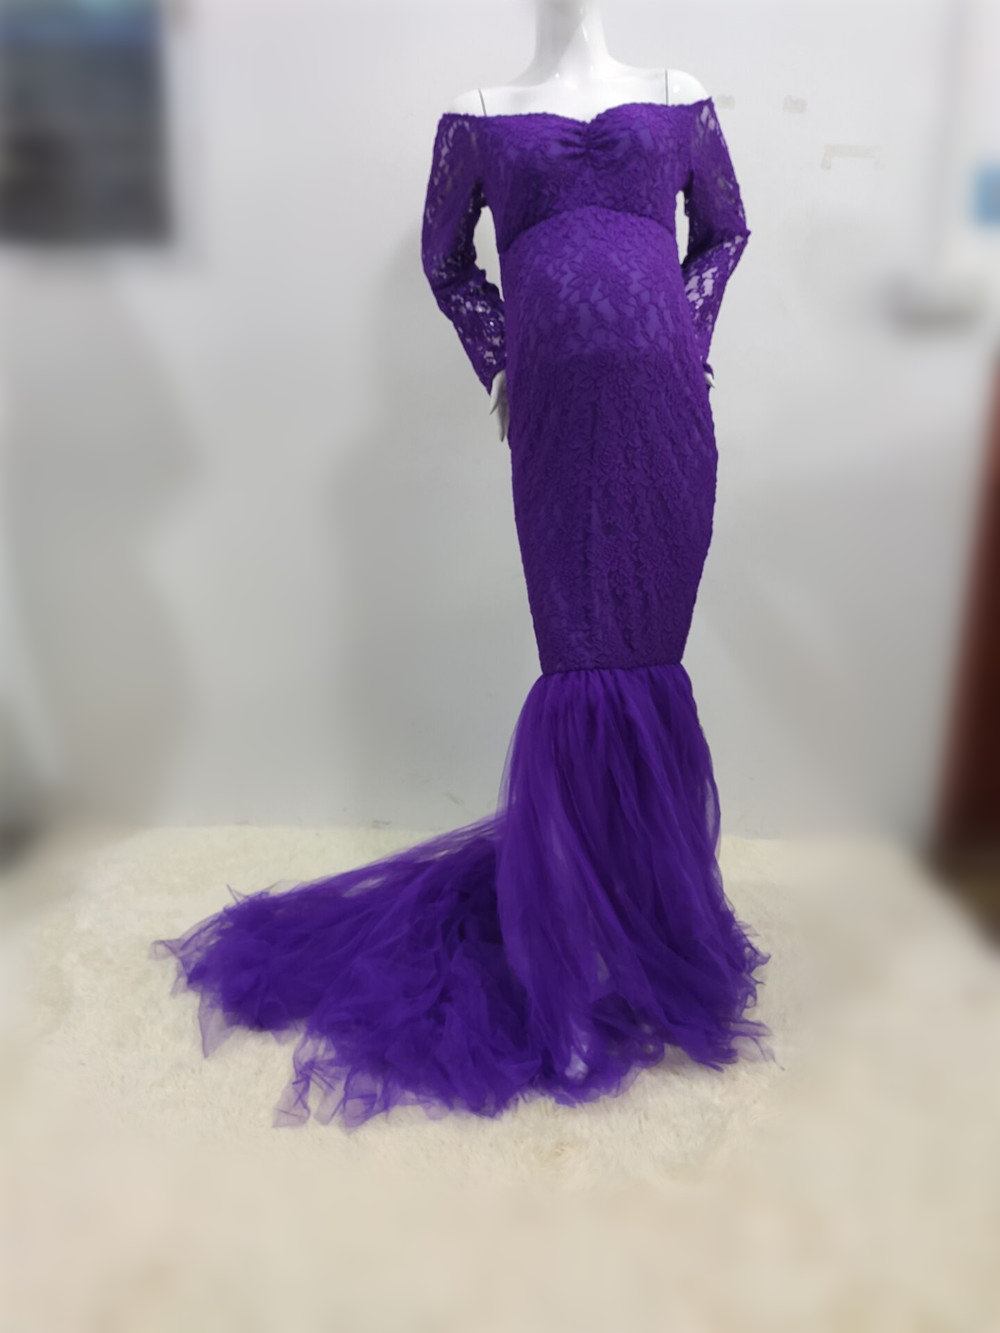 Elegence Maternity Photography Props Dresses Lace Mesh Long Pregnancy Dress For Pregnant Women Maxi Maternity Gown Photo Shoots (8)